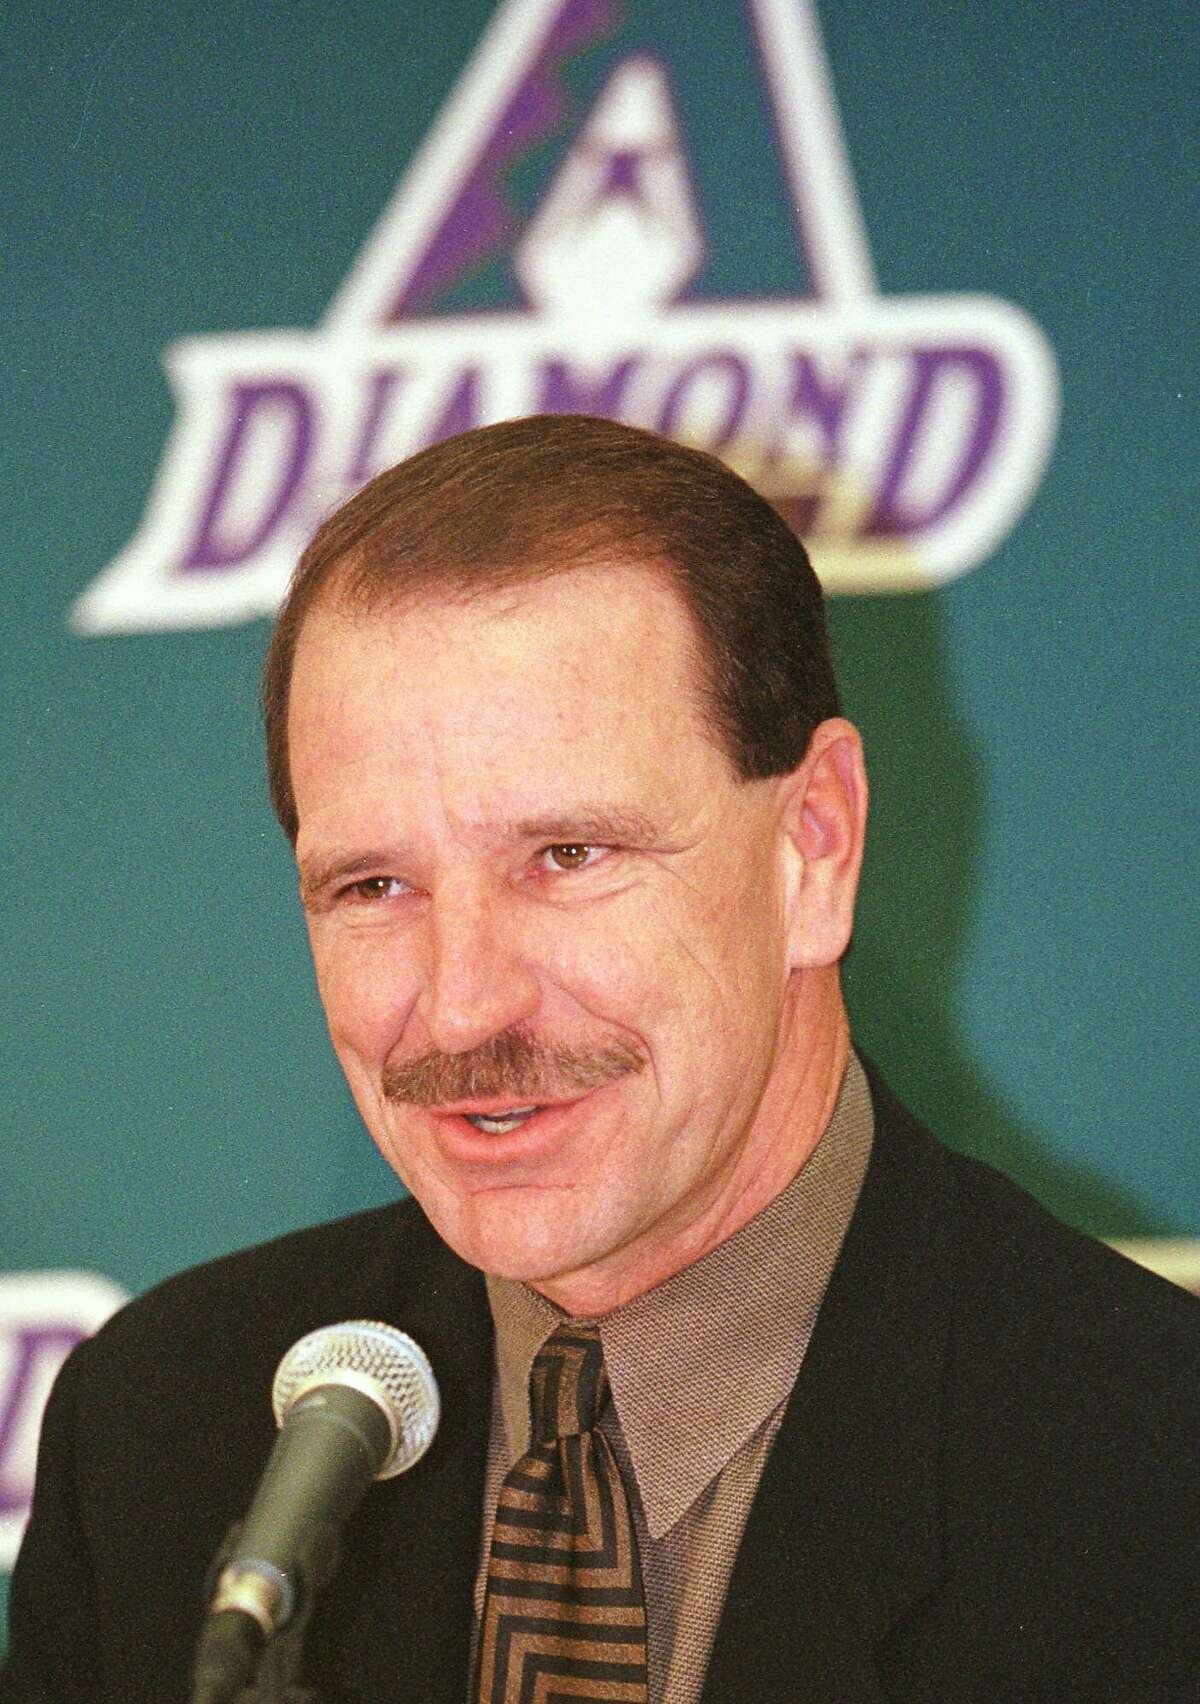 Bob Brenly, 46, a broadcaster and former major league catcher, speaks to a packed Arizona Diamondbacks clubhouse Monday, Oct. 30, 2000, in Phoenix. Brenly, signed as the team's new manager, received a three-year contract worth $2 million, with a fourth year at the club's option. (AP Photo/Jason Wise) HOUCHRON CAPTION (10/31/2000)(02/12/2001): Brenly. HOUCHRON CAPTION (05/10/2001):